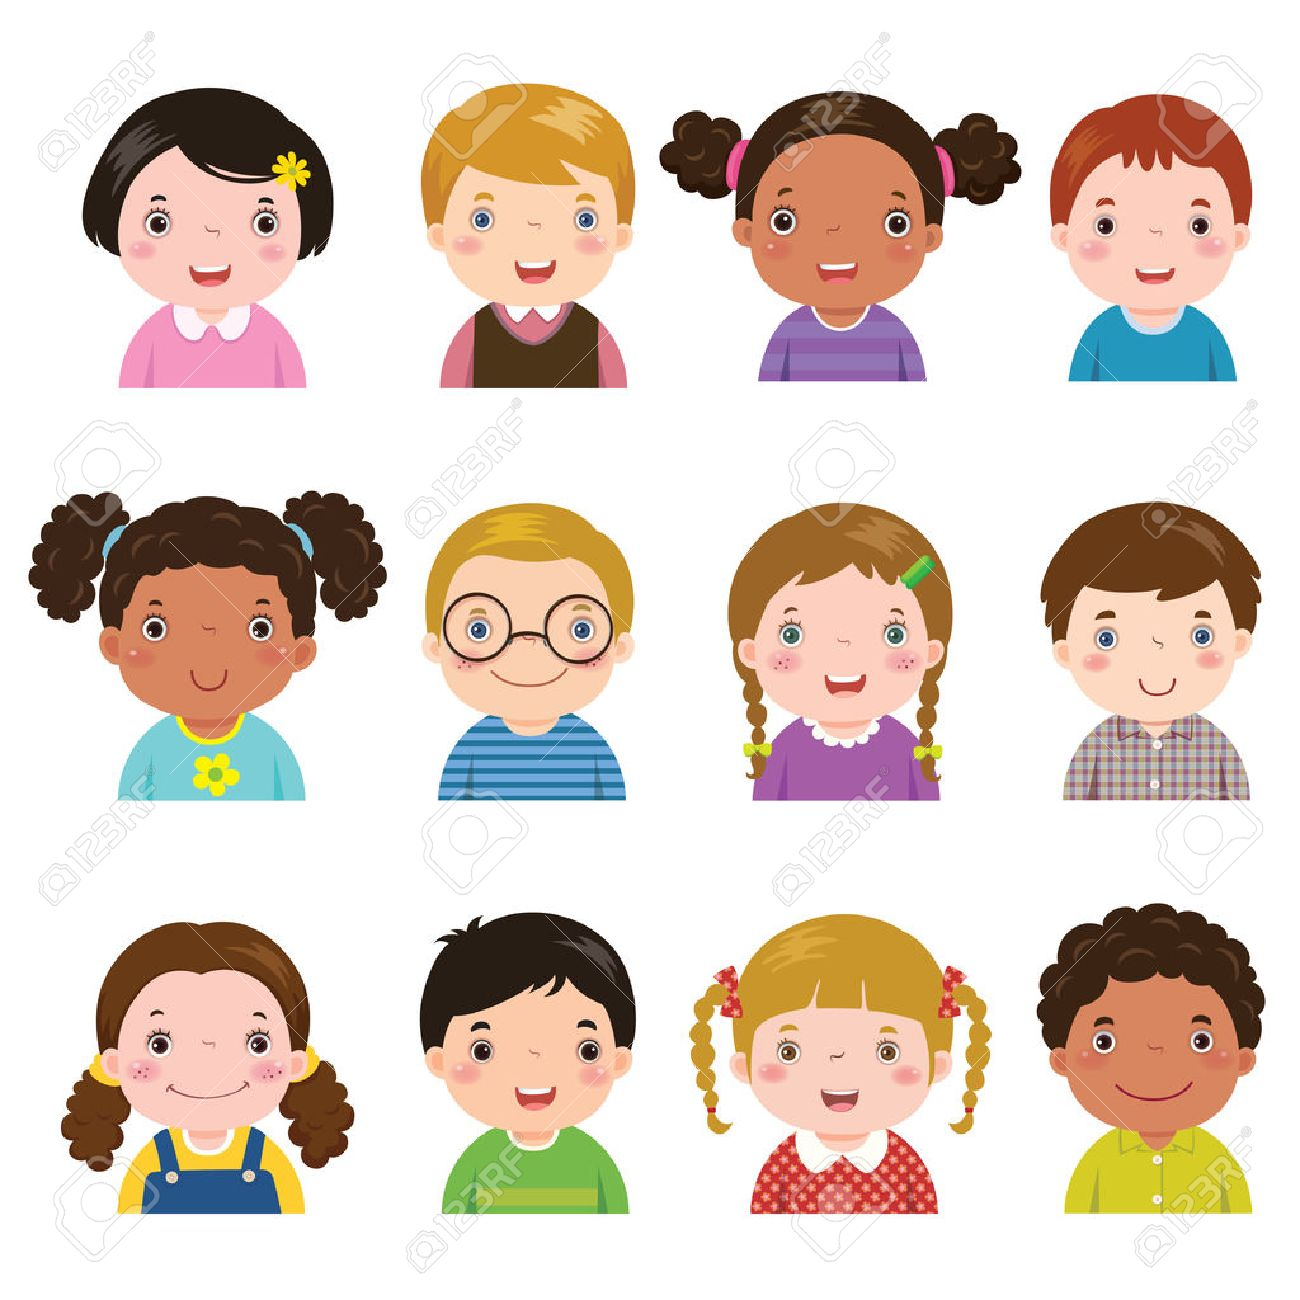 Vector illustration set of different avatars of boys and girls on a white background. Different skin tones, hair colors and styles. - 53195128